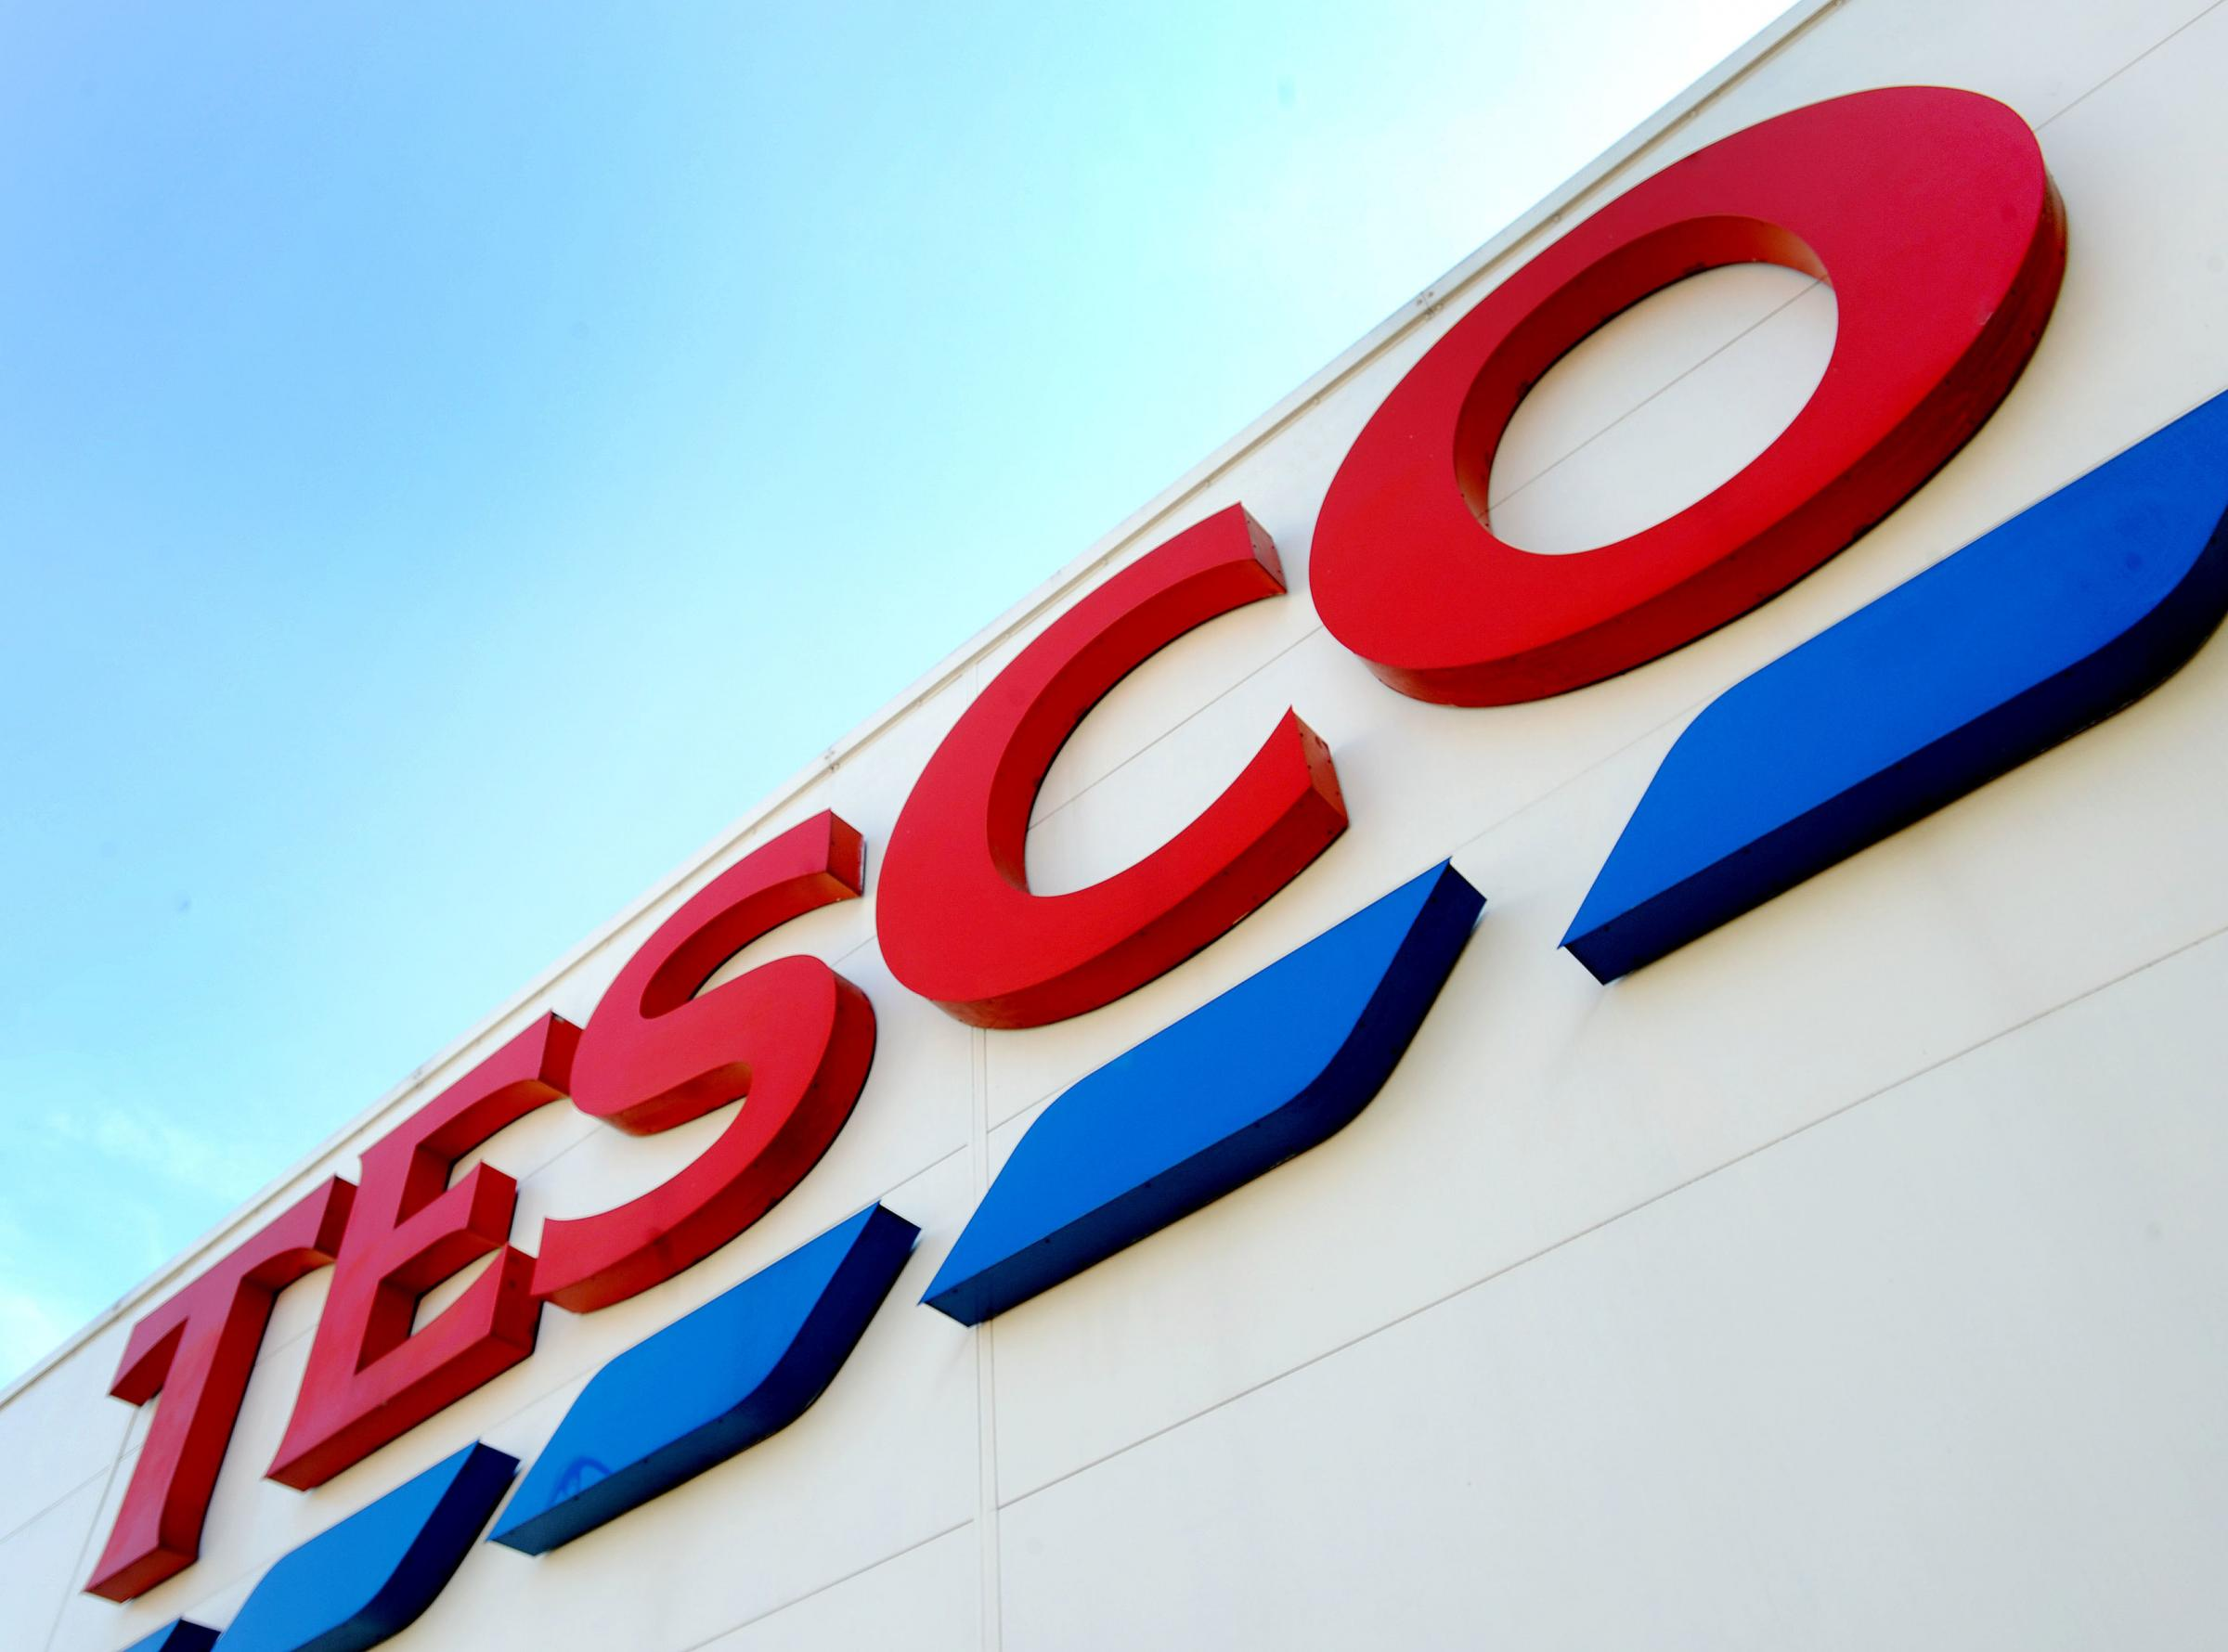 Selby woman banned from Tesco, Aldi and Morrison stores